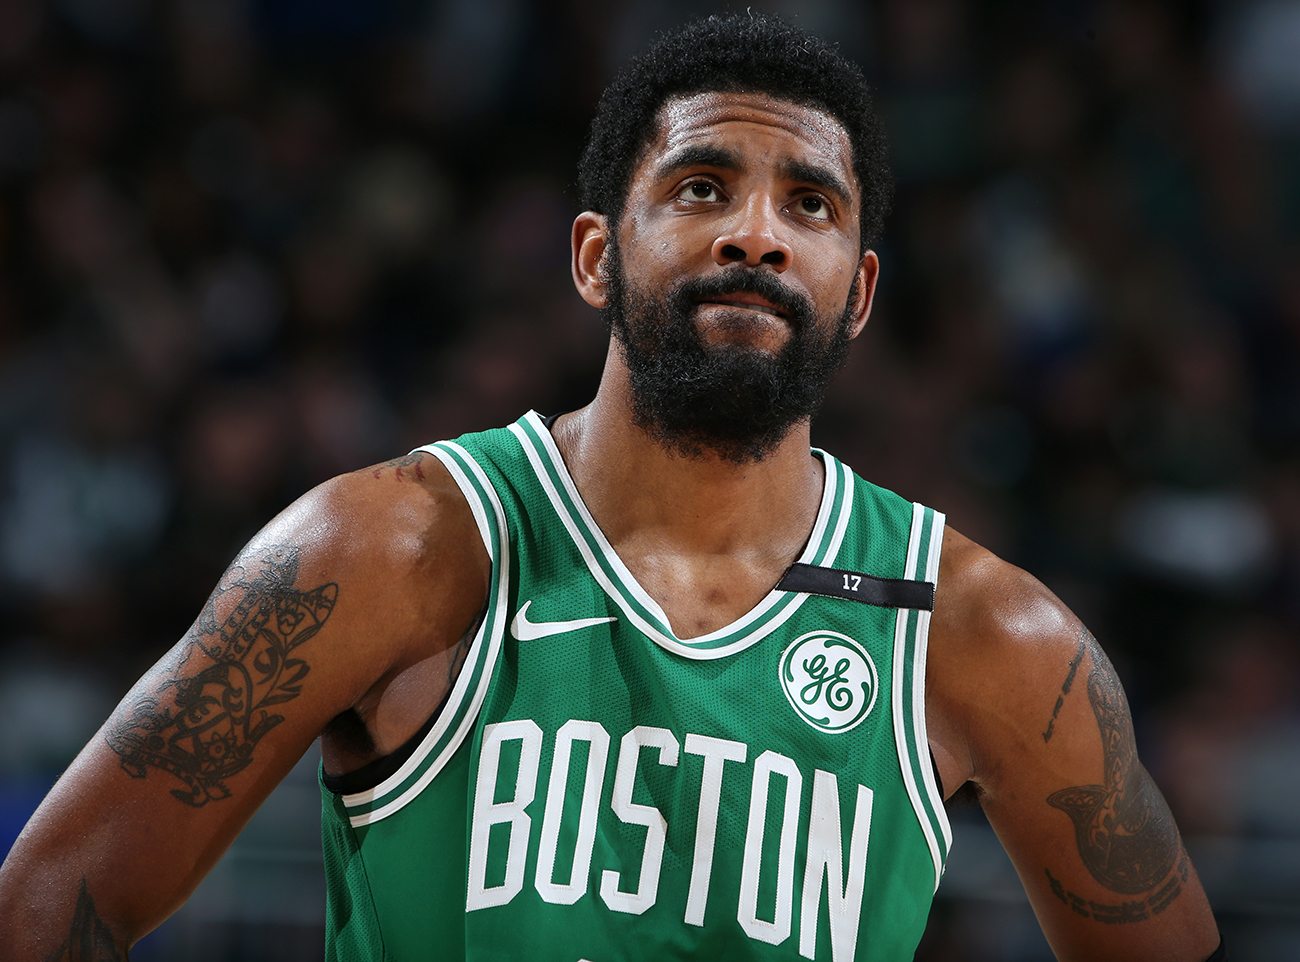 nba, kyrie irving, kevin durant, brooklyn nets, boston celtics, wire